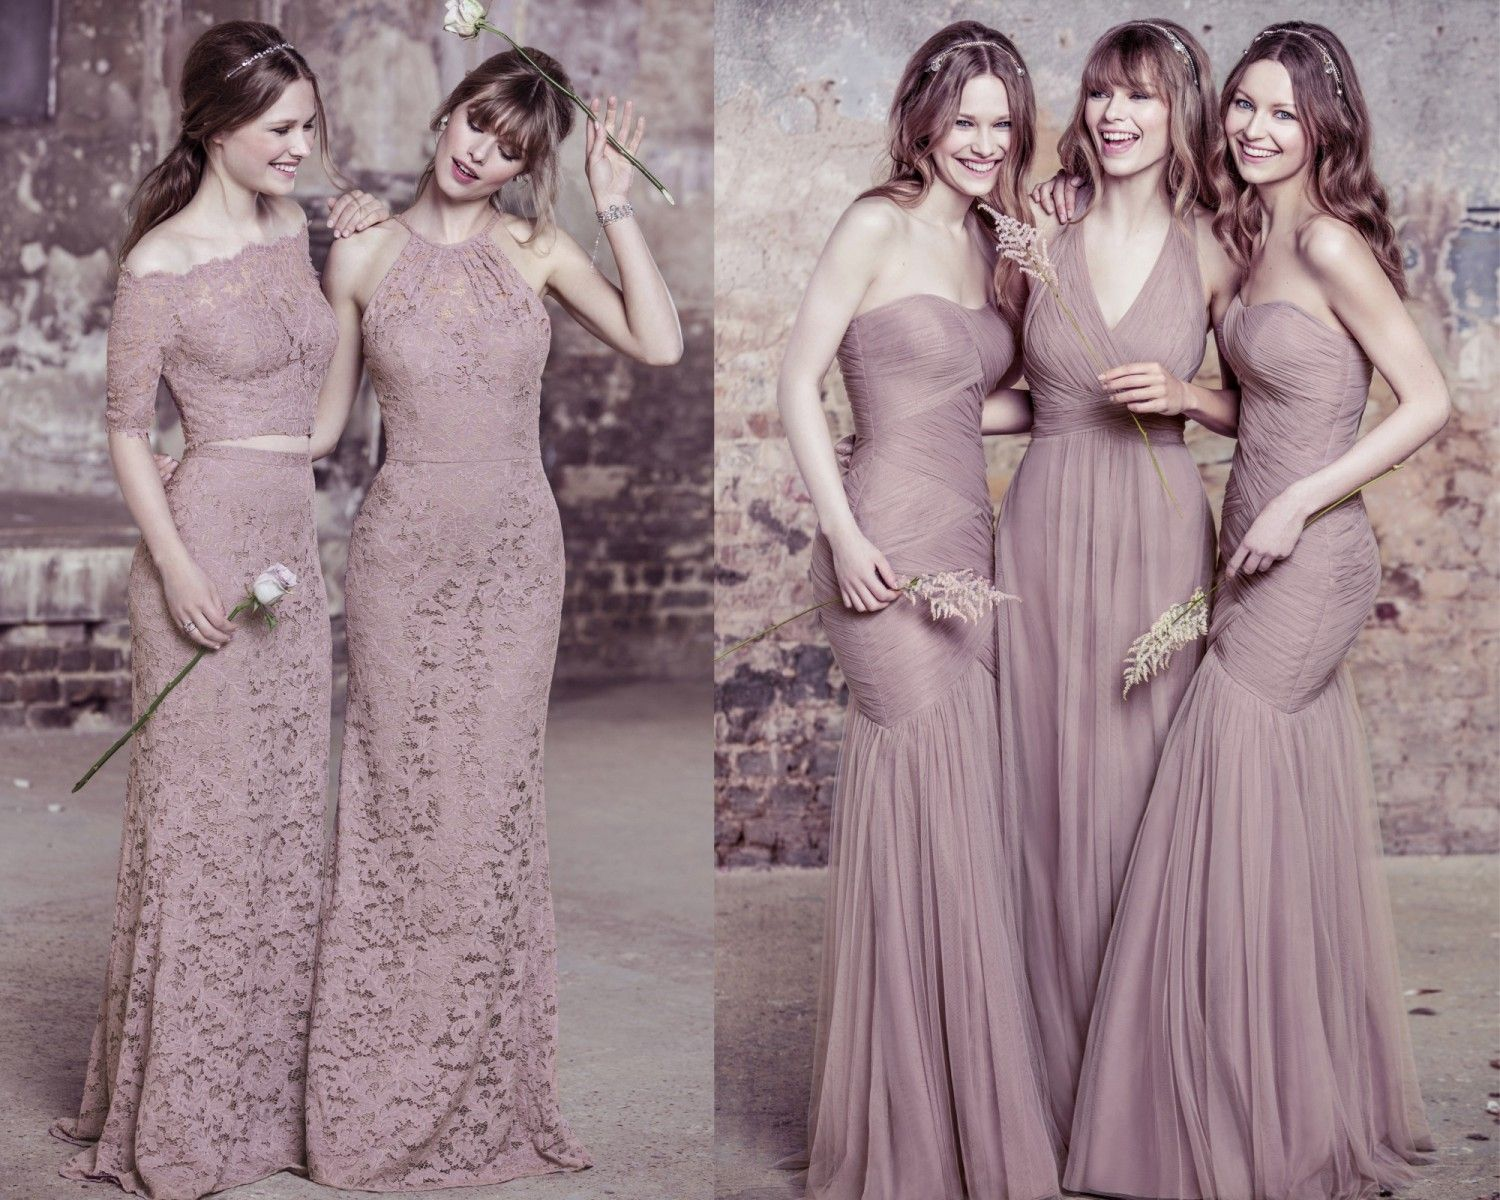 Kelsey rose chic dresses for modern bridesmaids and brides kelsey rose chic dresses for modern bridesmaids and brides ombrellifo Image collections